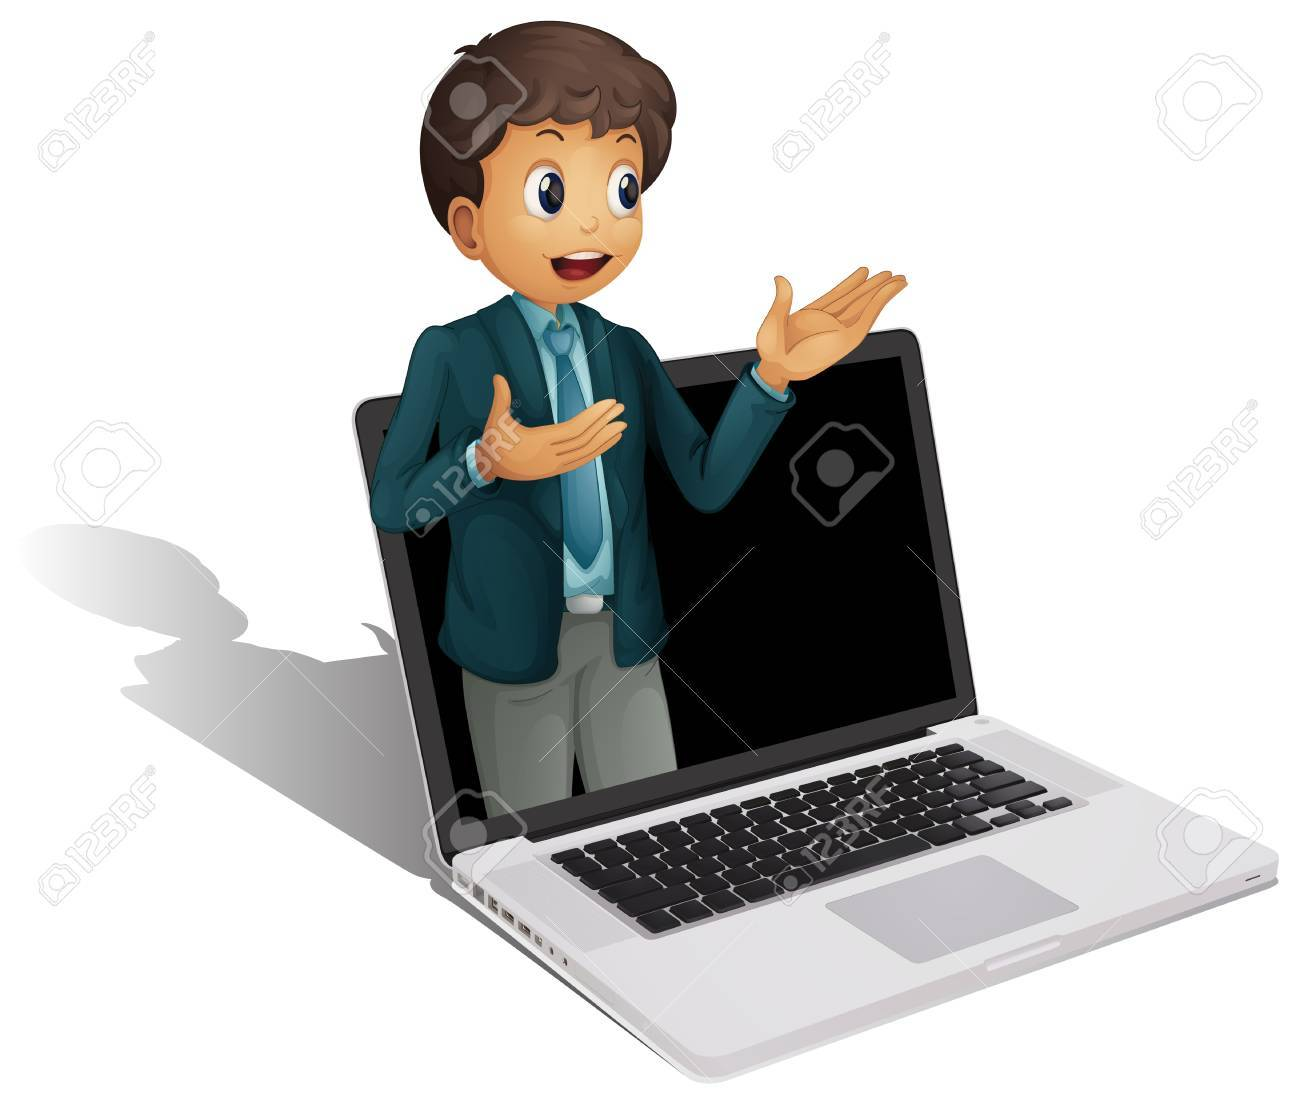 illustration of a laptop and man on a white background Stock Vector - 14253804